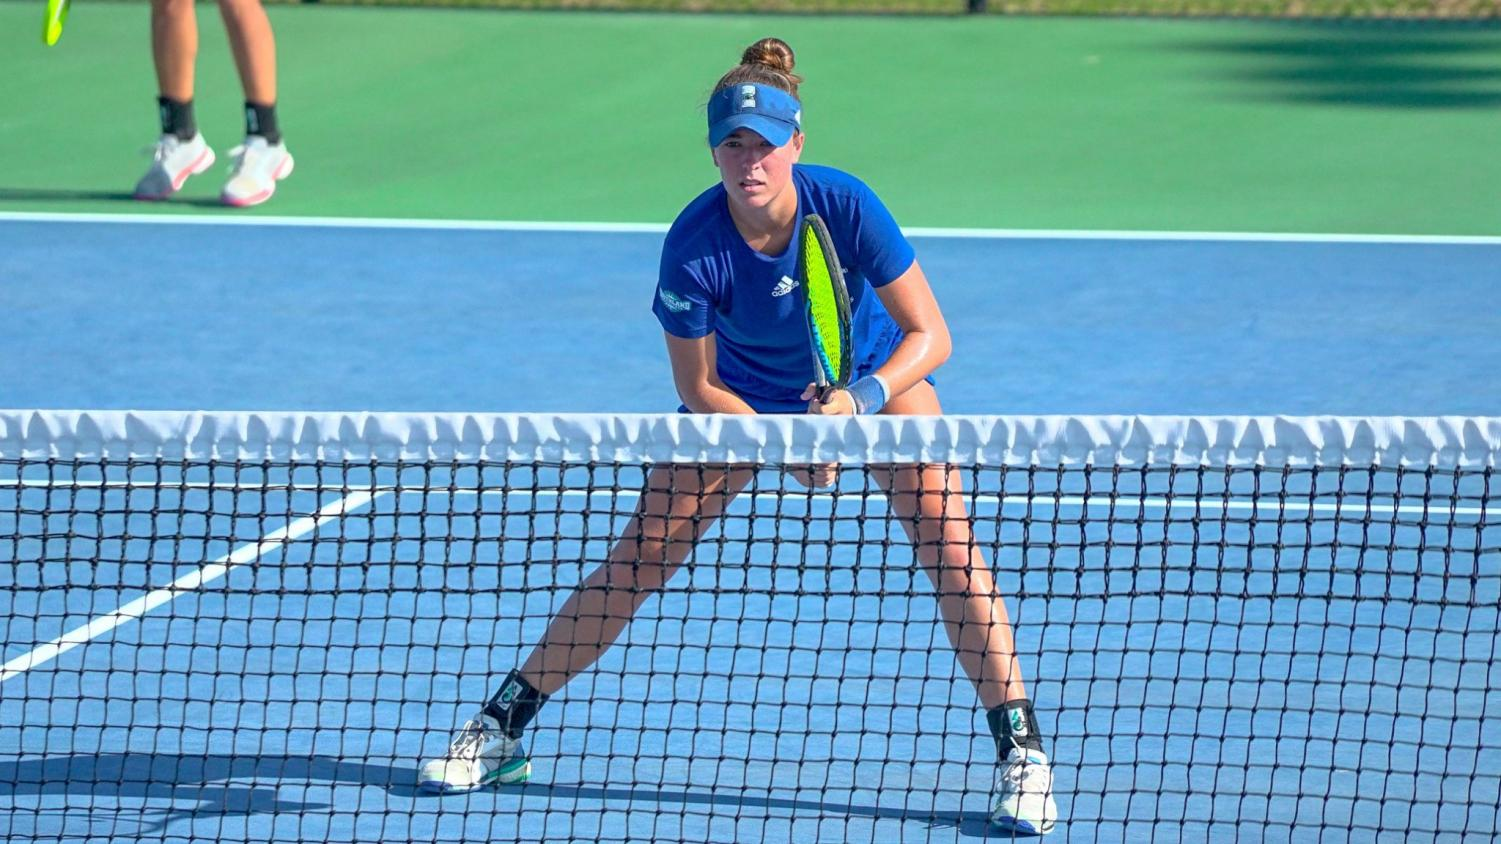 Image courtesy of Islander Athletics - TAMU-CC's women's tennis team competed well, sending them to the Rice Invitational in Sept. 27.